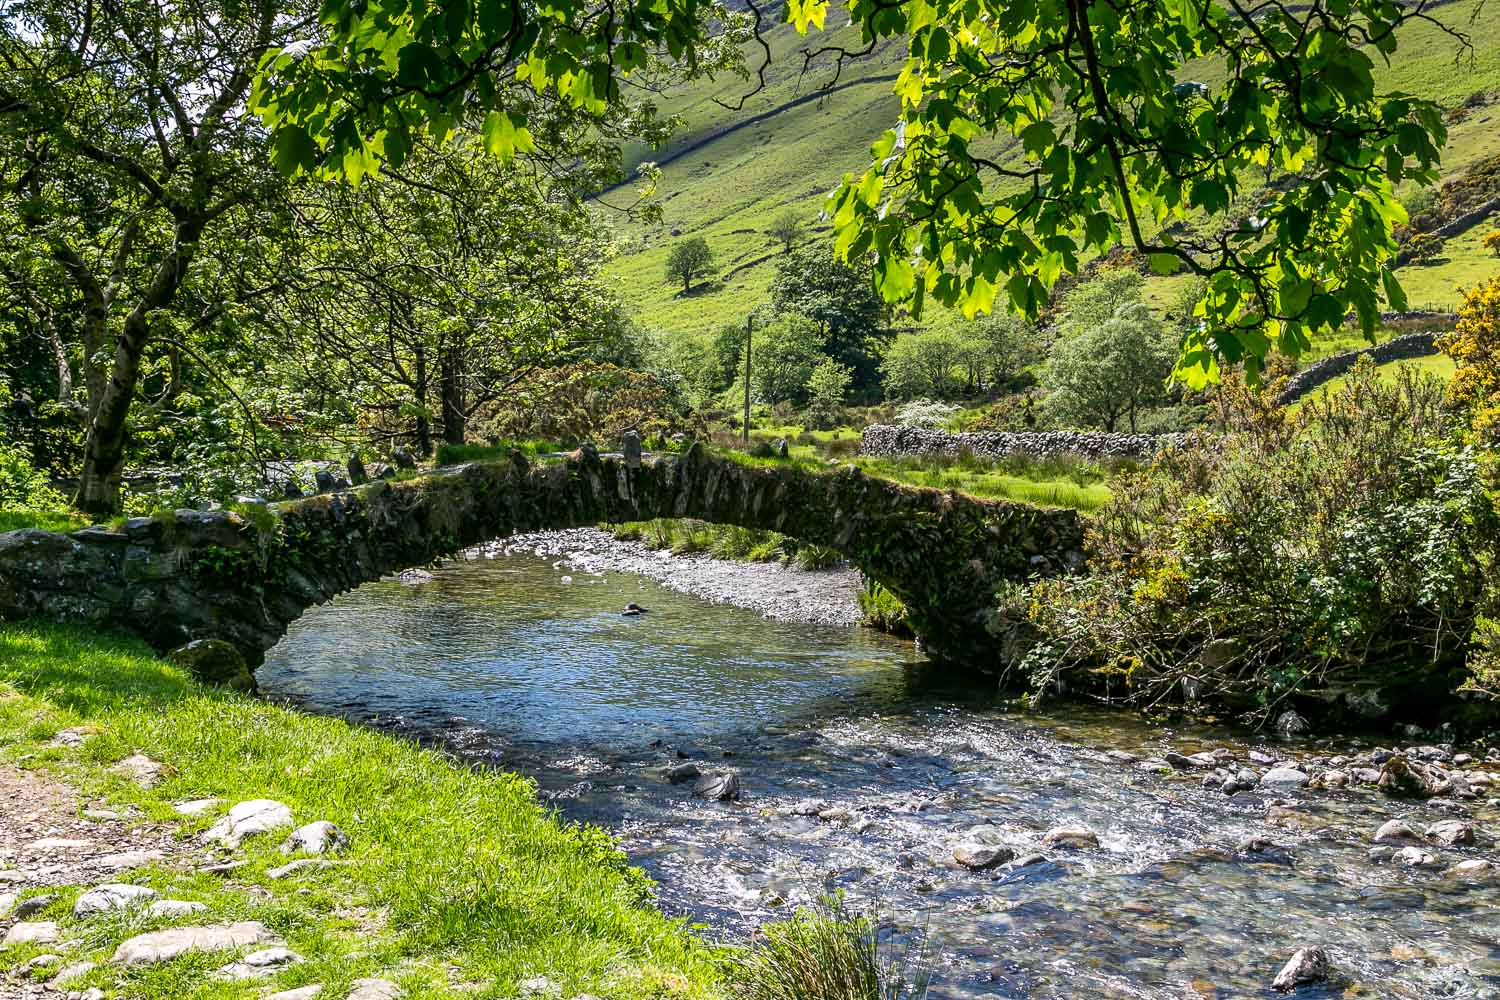 packhorse bridge over Mosedale Beck